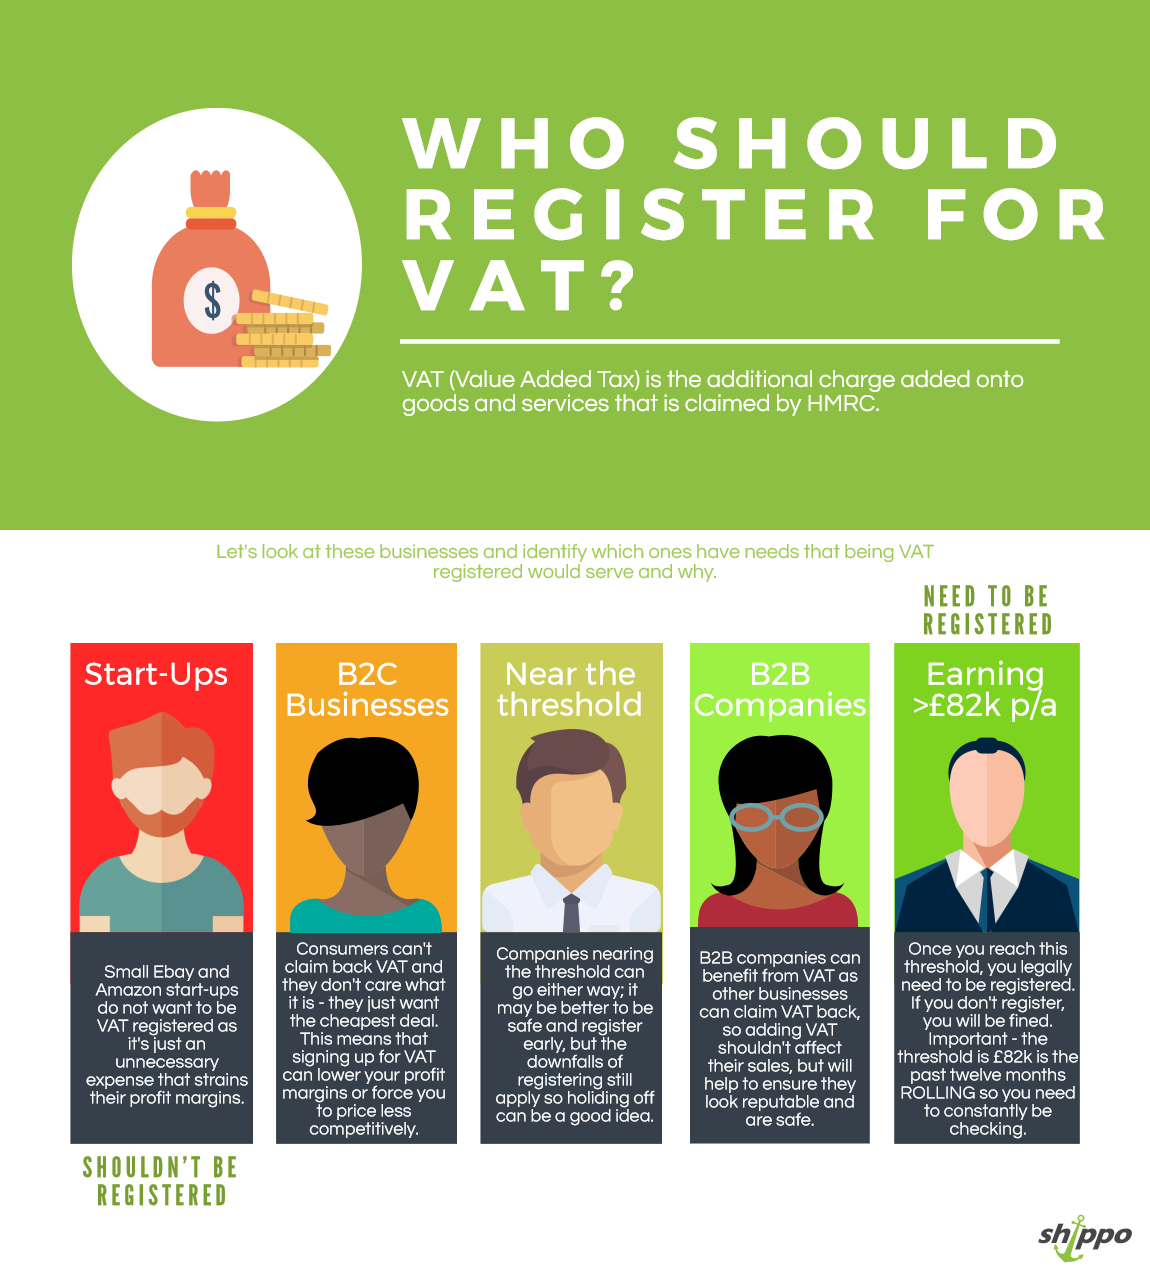 Which Companies Should Register For VAT?